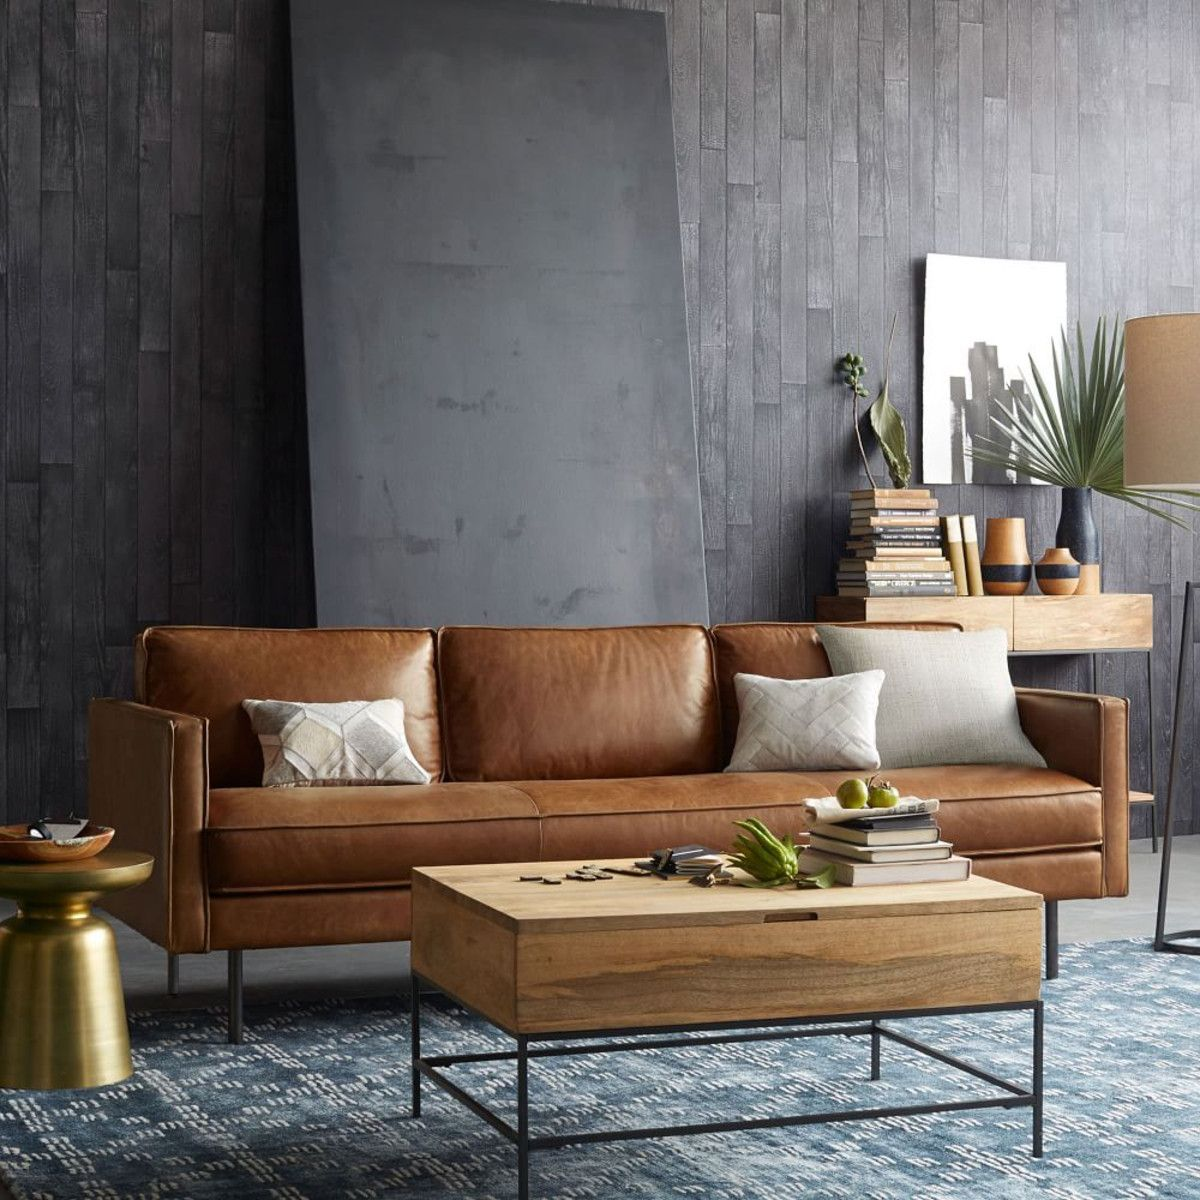 Modern Furniture, Home Decor & Home Accessories | west elm ...